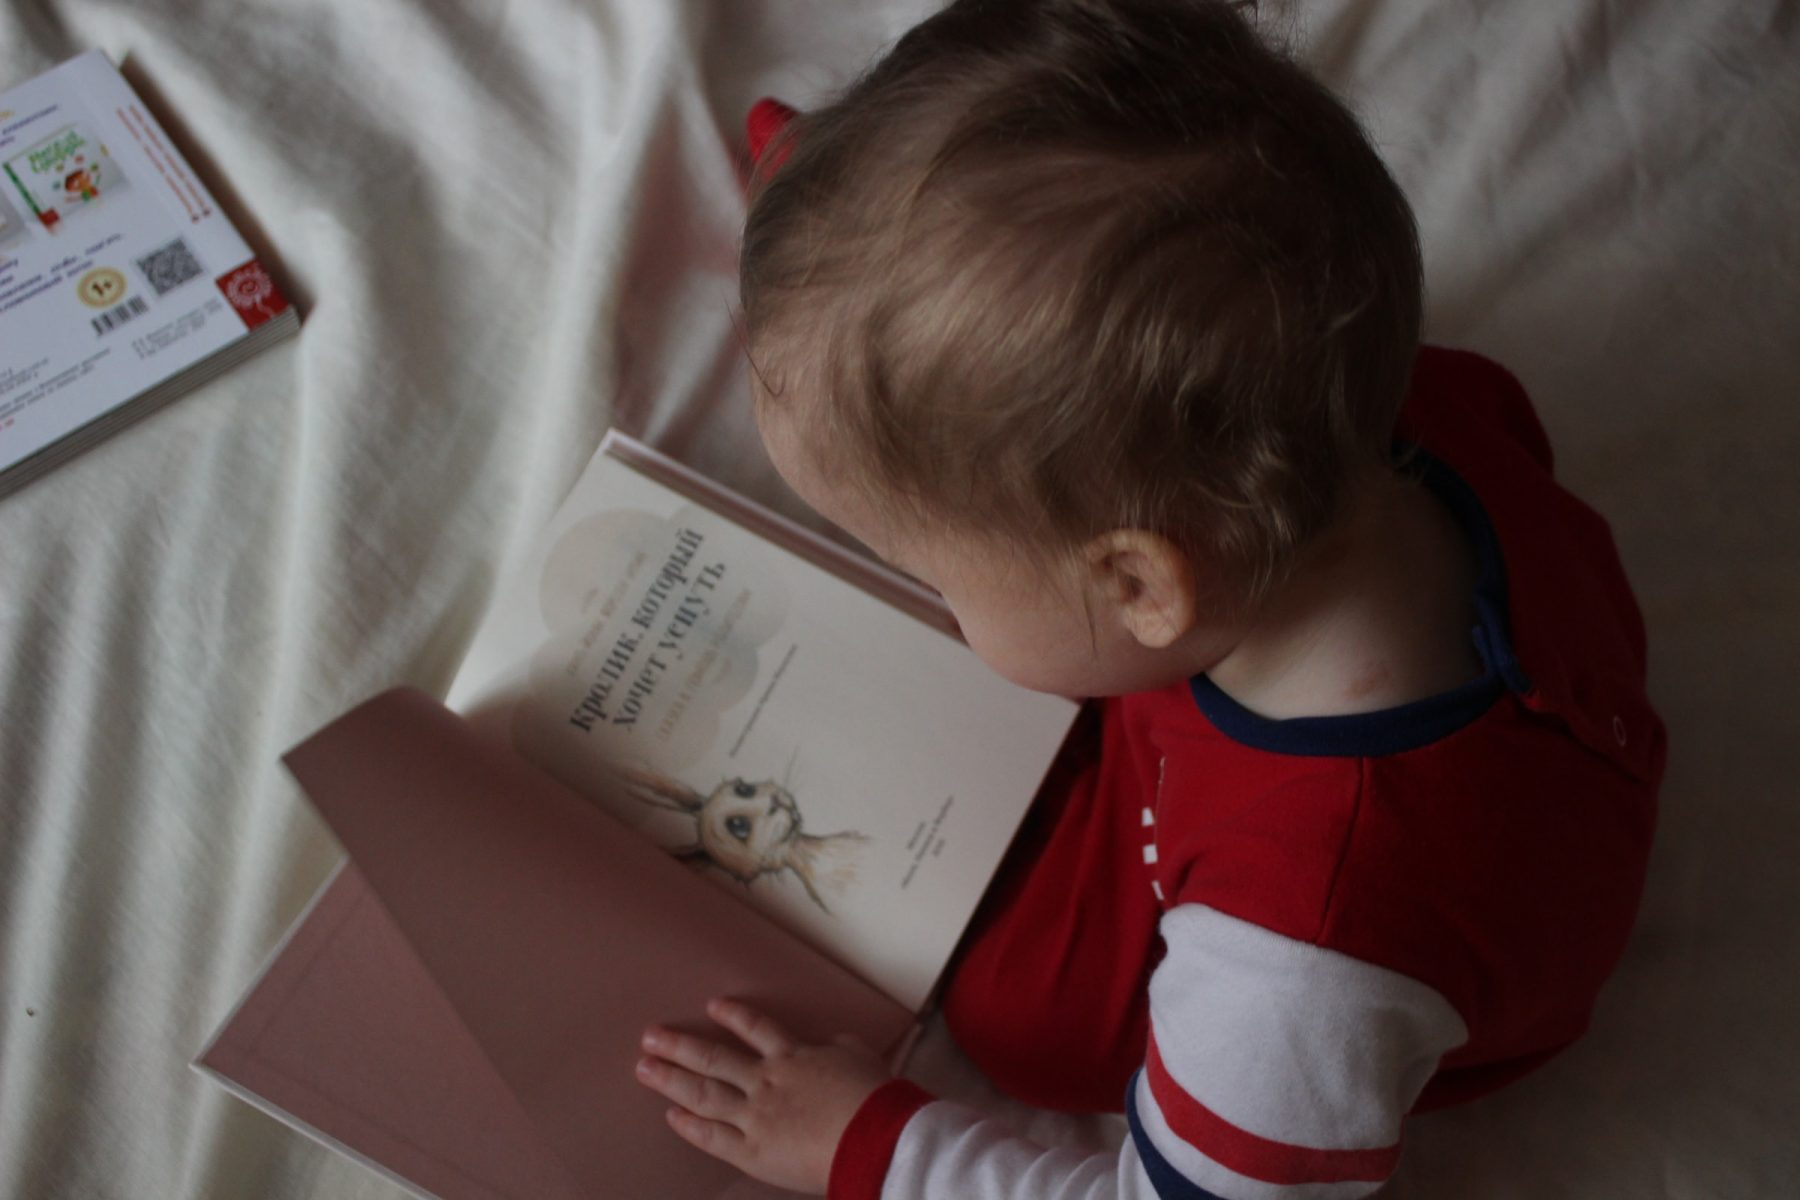 Child Reading - How to Start Teaching Your Toddler to Read